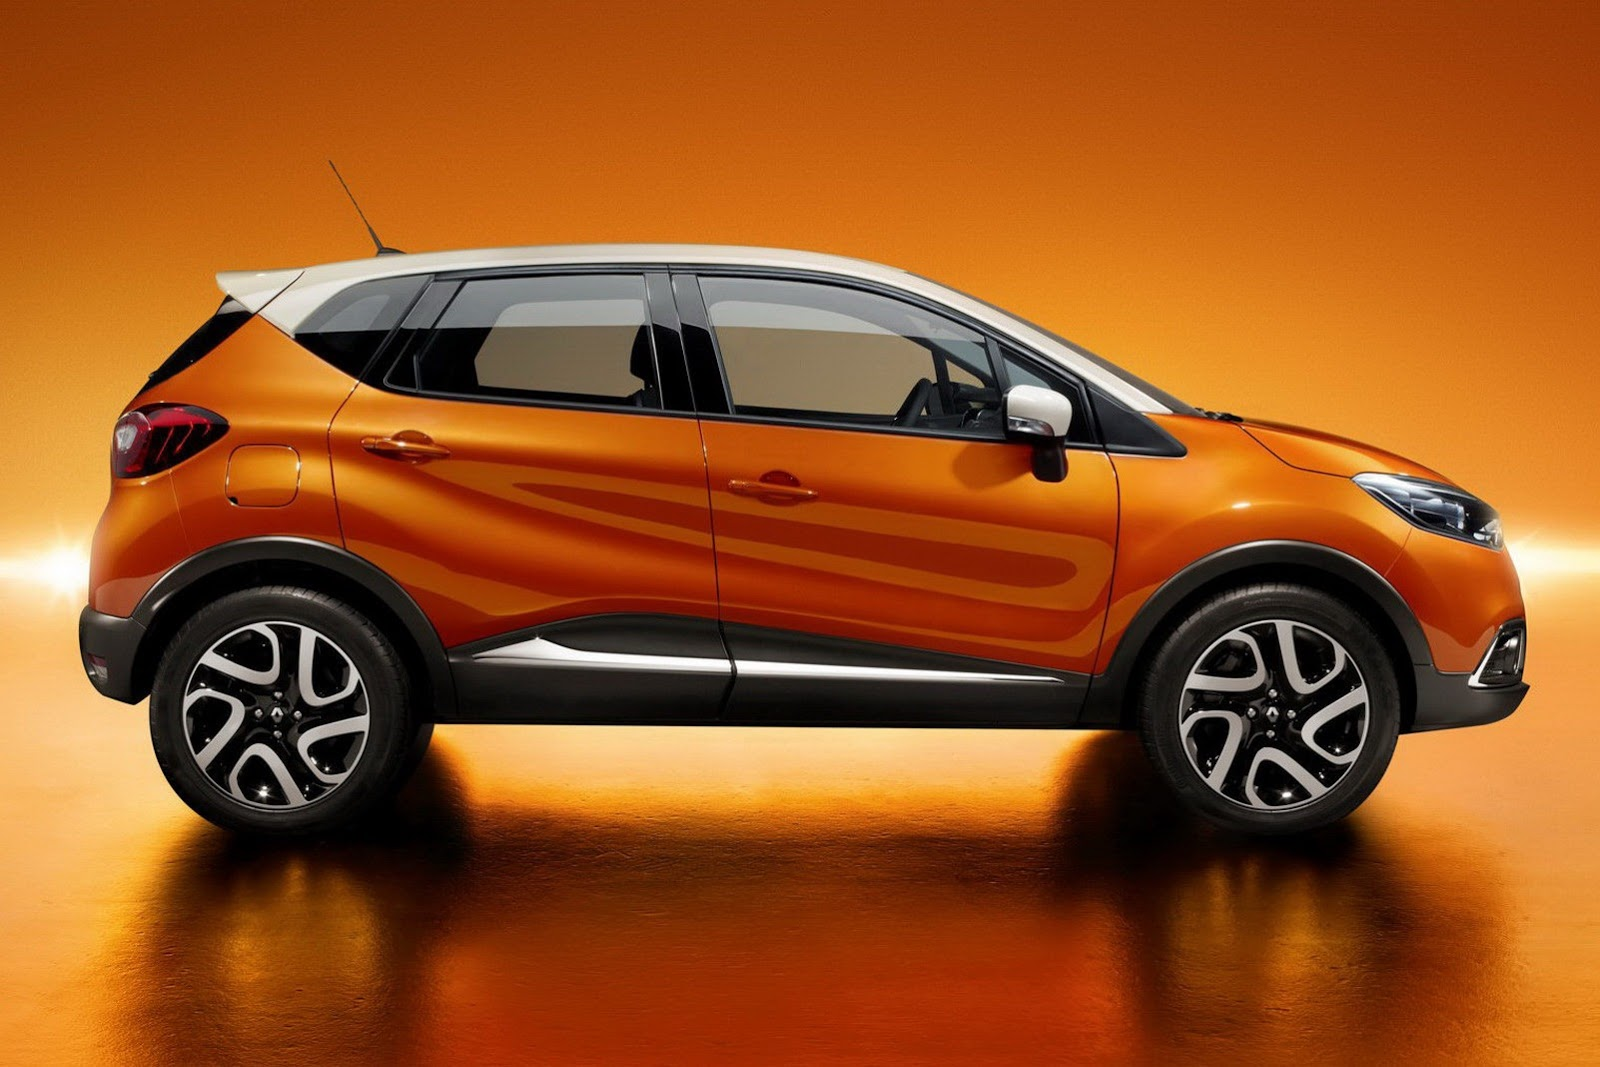 Renault Captur photo 12